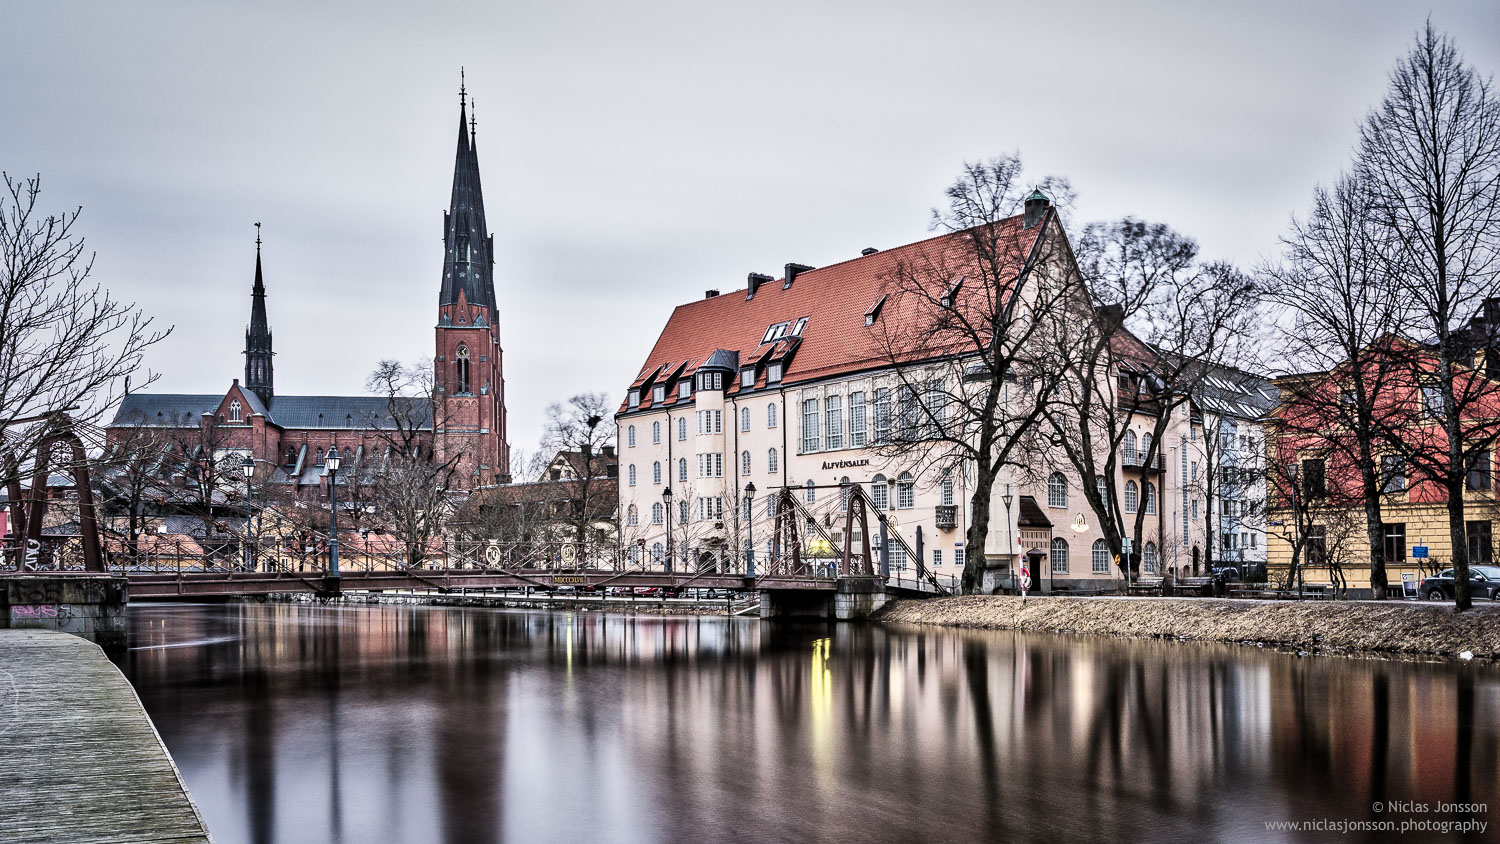 Uppsala, Sweden, March 2014